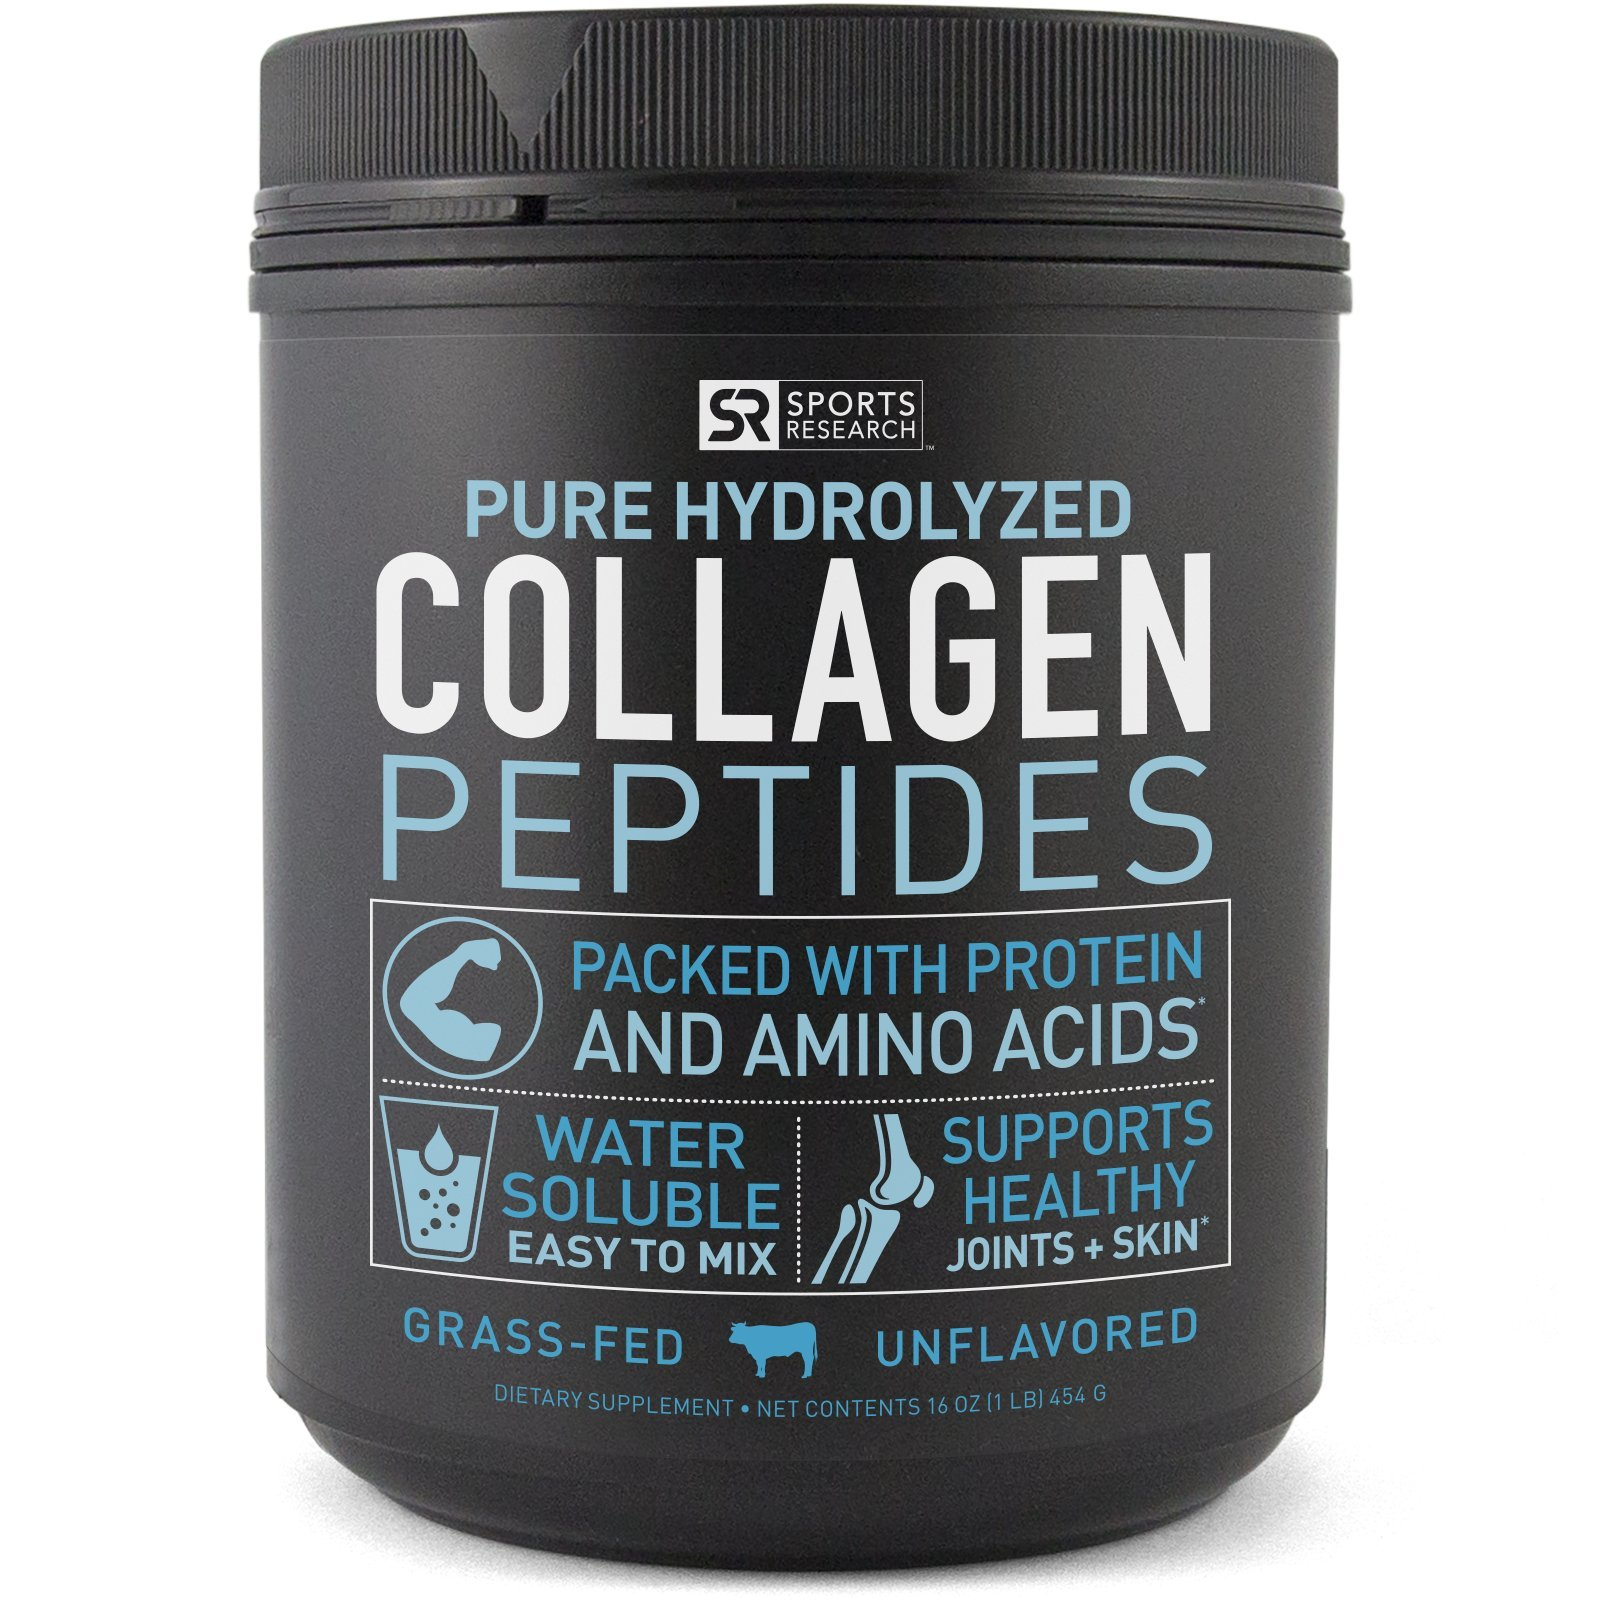 Premium Collagen Peptides | Grass-Fed, Certified Paleo Friendly, Non-Gmo and Gluten Free - Unflavored and Easy to Mix (16oz Bottle)